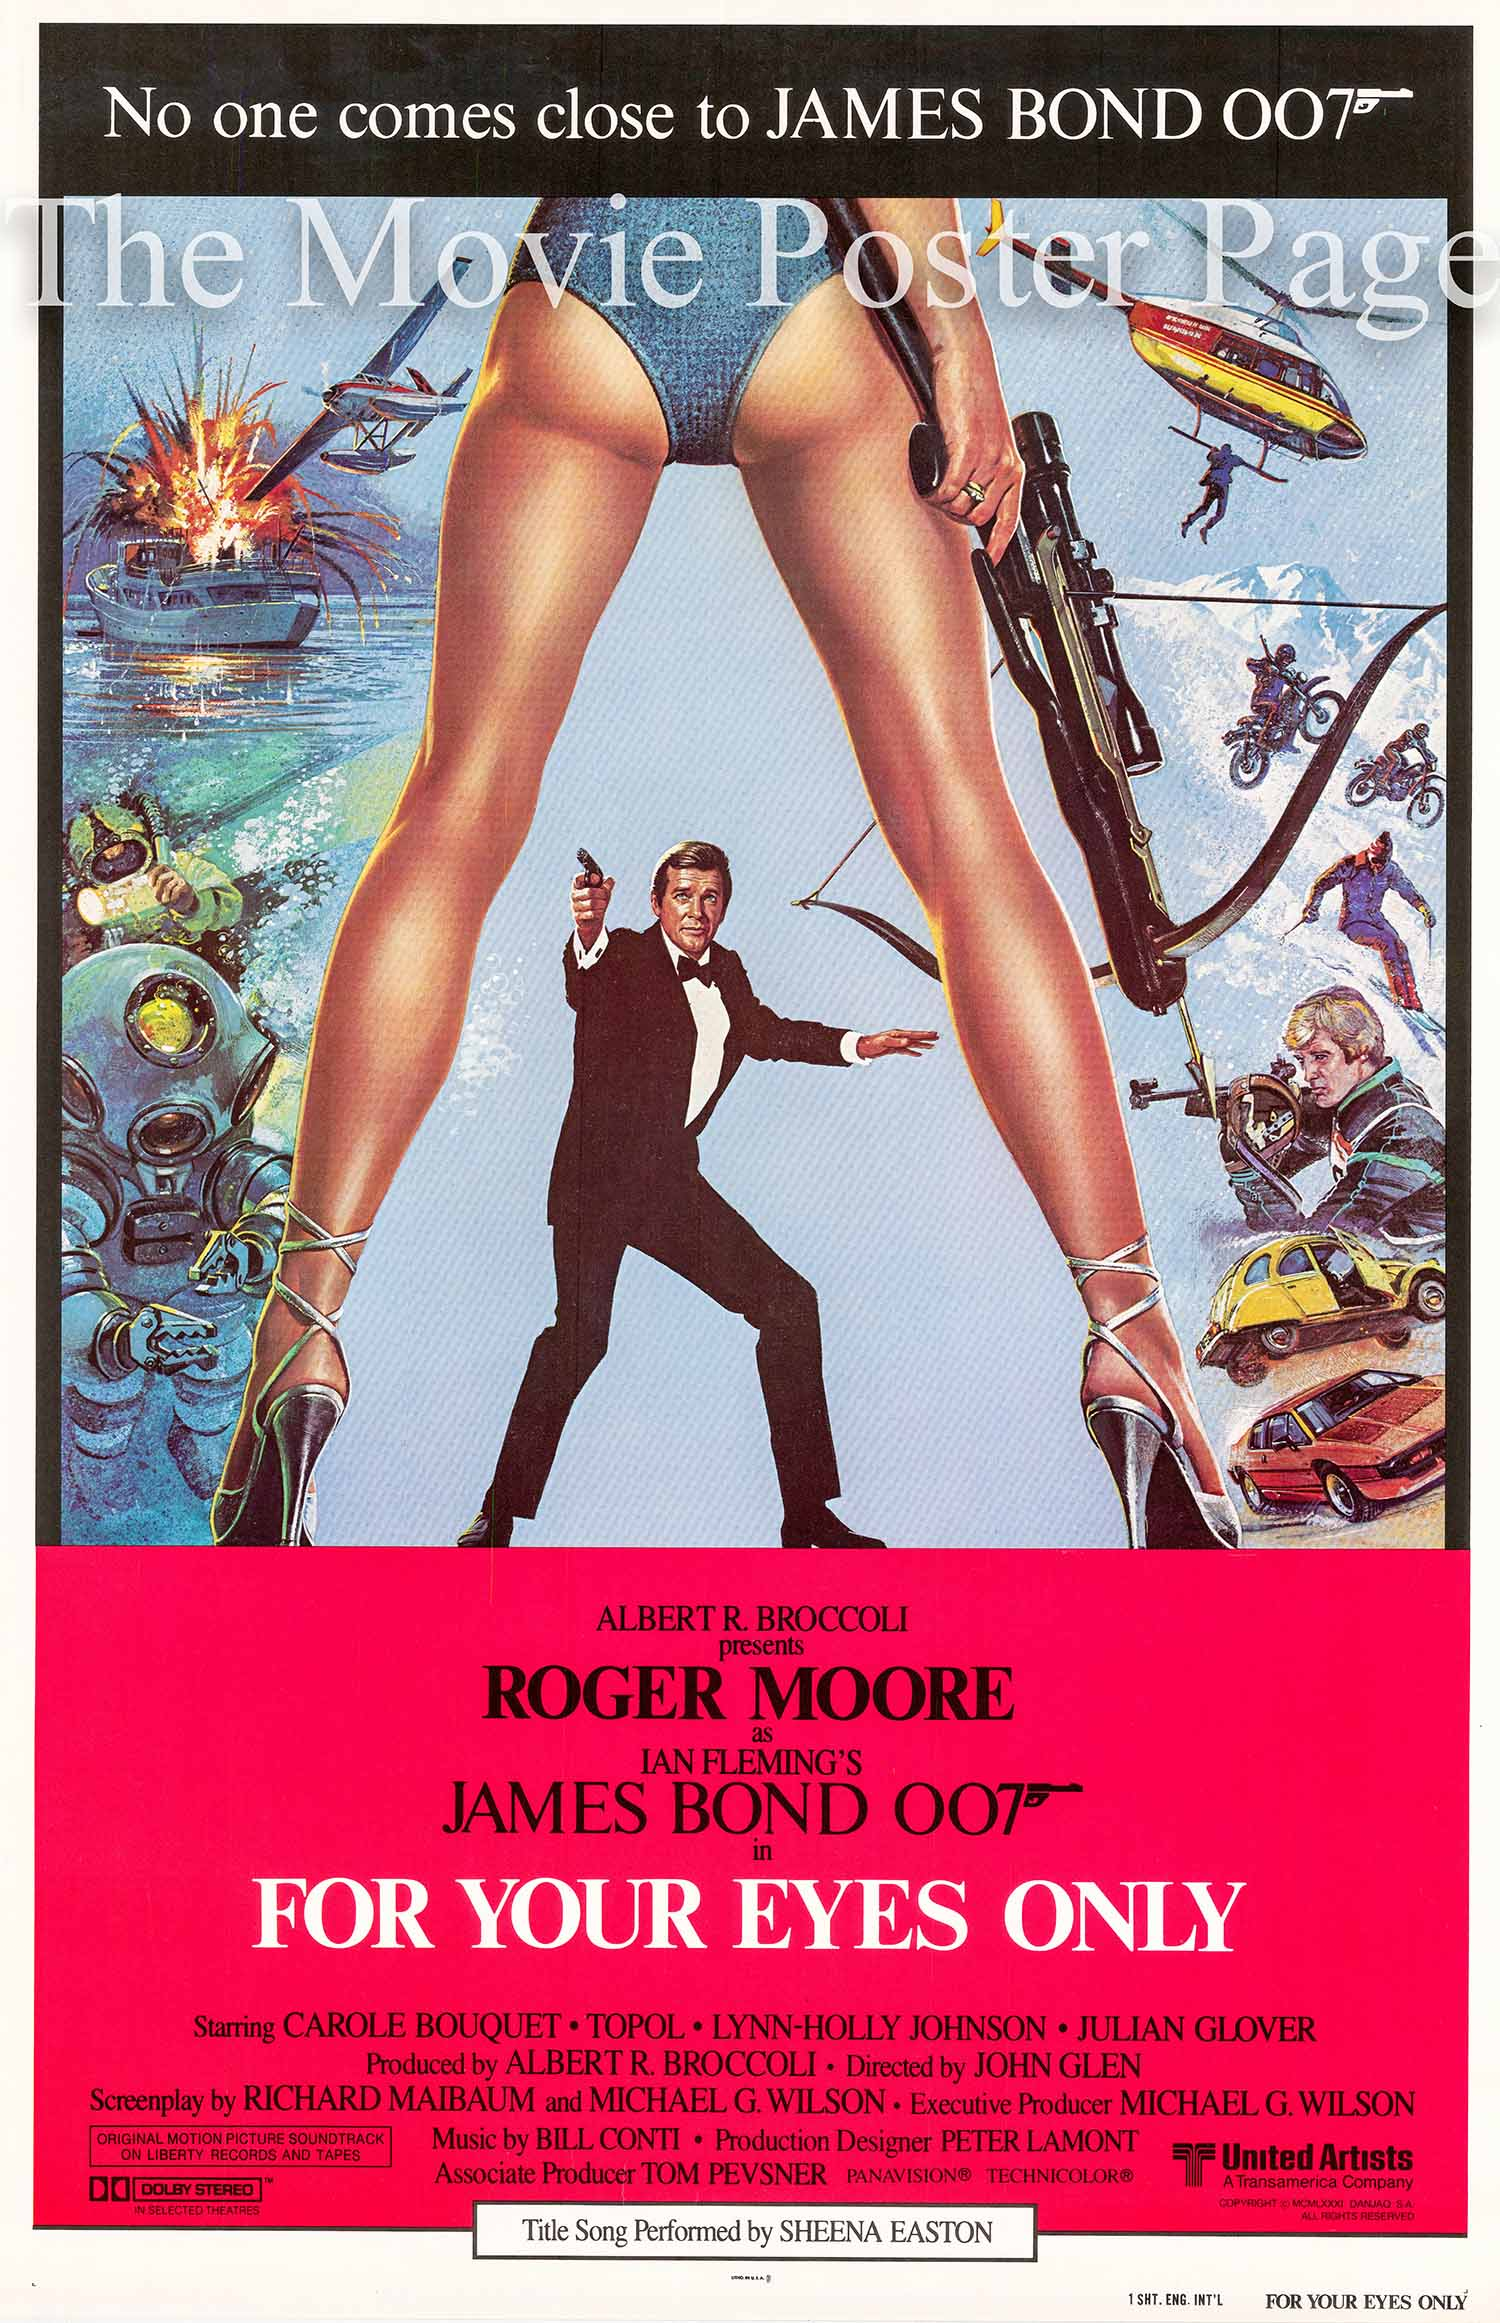 Pictured is an internaional promotional one-sheet poster for the 1981 John Glen film For Your Eyes Only starring Roger Moore as James Bond.